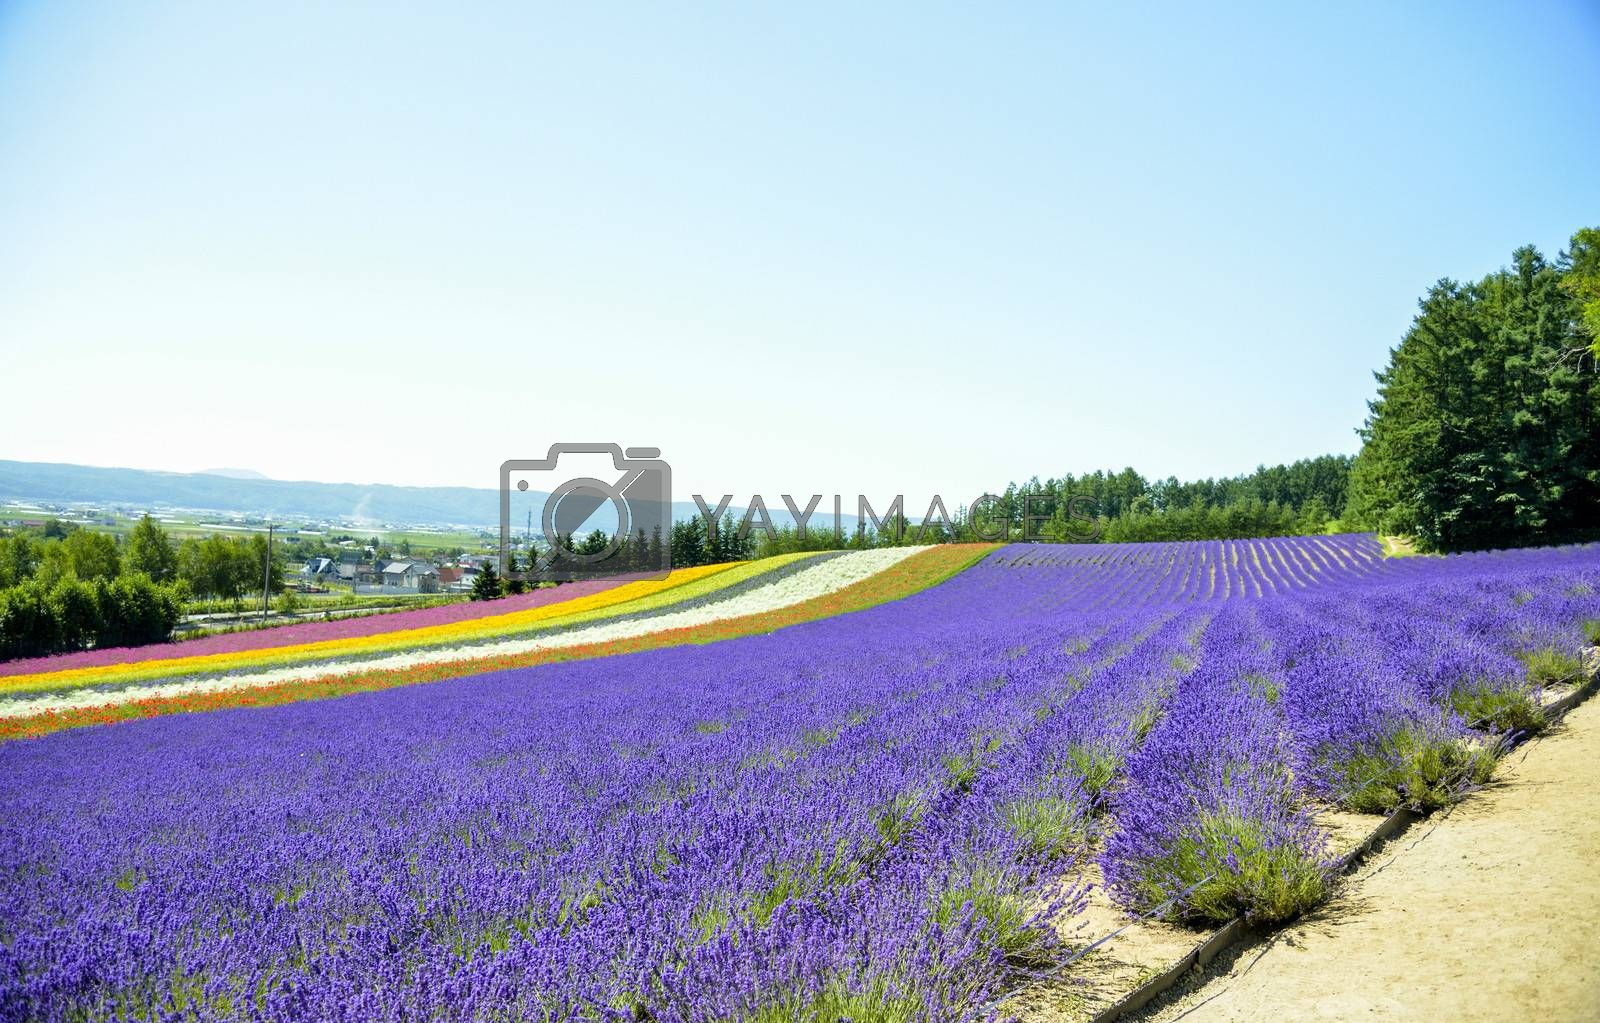 Lavender field in the row2